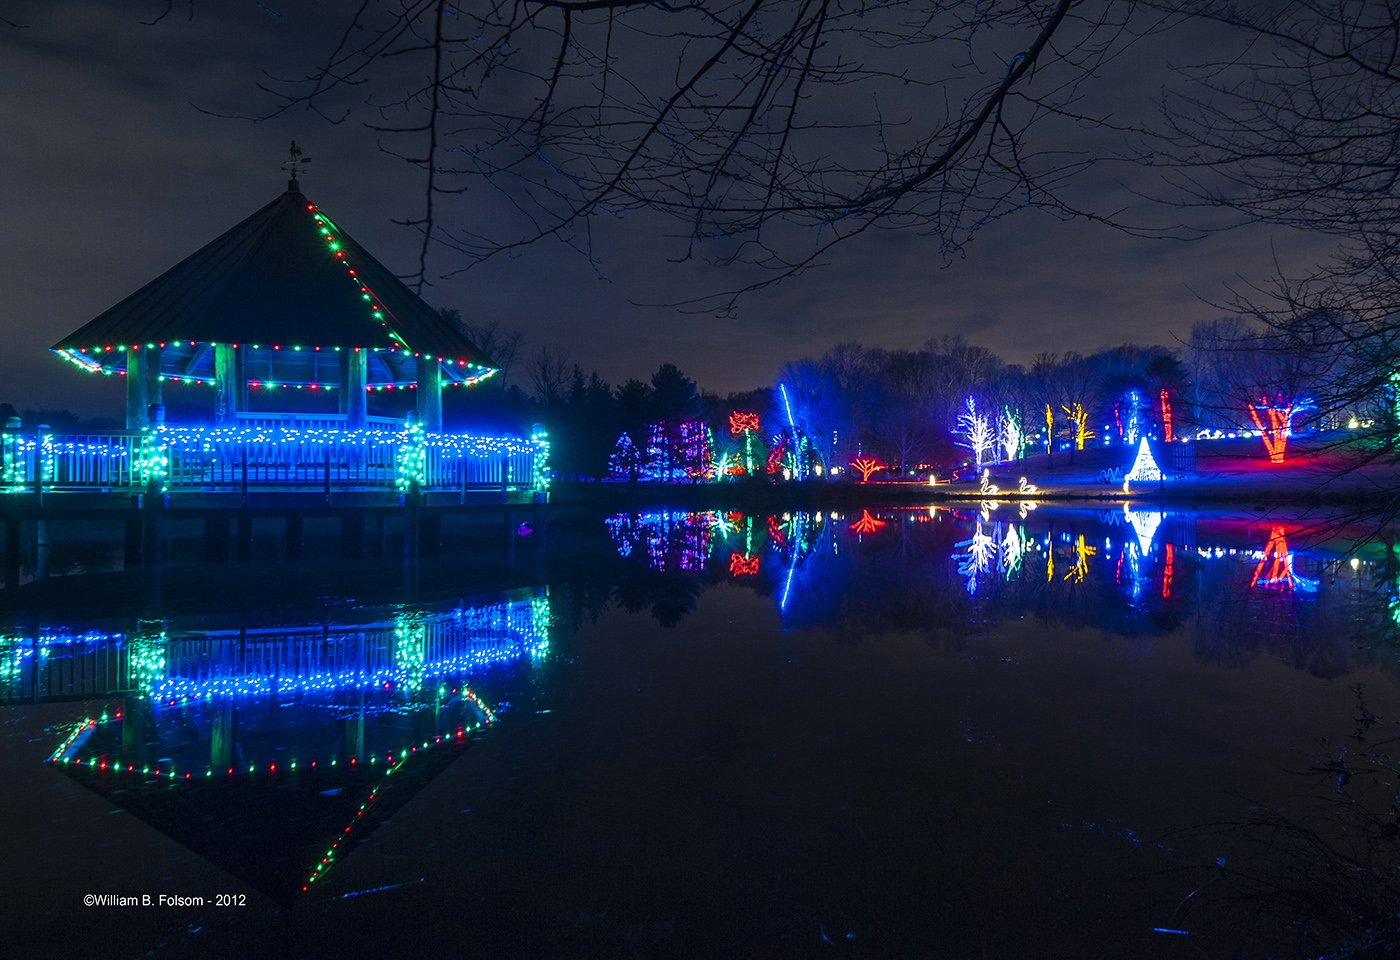 Winter Walk of Lights at Meadowlark Botanical Garden. Bring your family and friends to be dazzled by the magical Winter Walk of Lights at Meadowlark Botanical Gardens in Vienna, Virginia. Every year from mid-November until just after New Year's Day, the garden is transformed into a half-mile, walk of lights